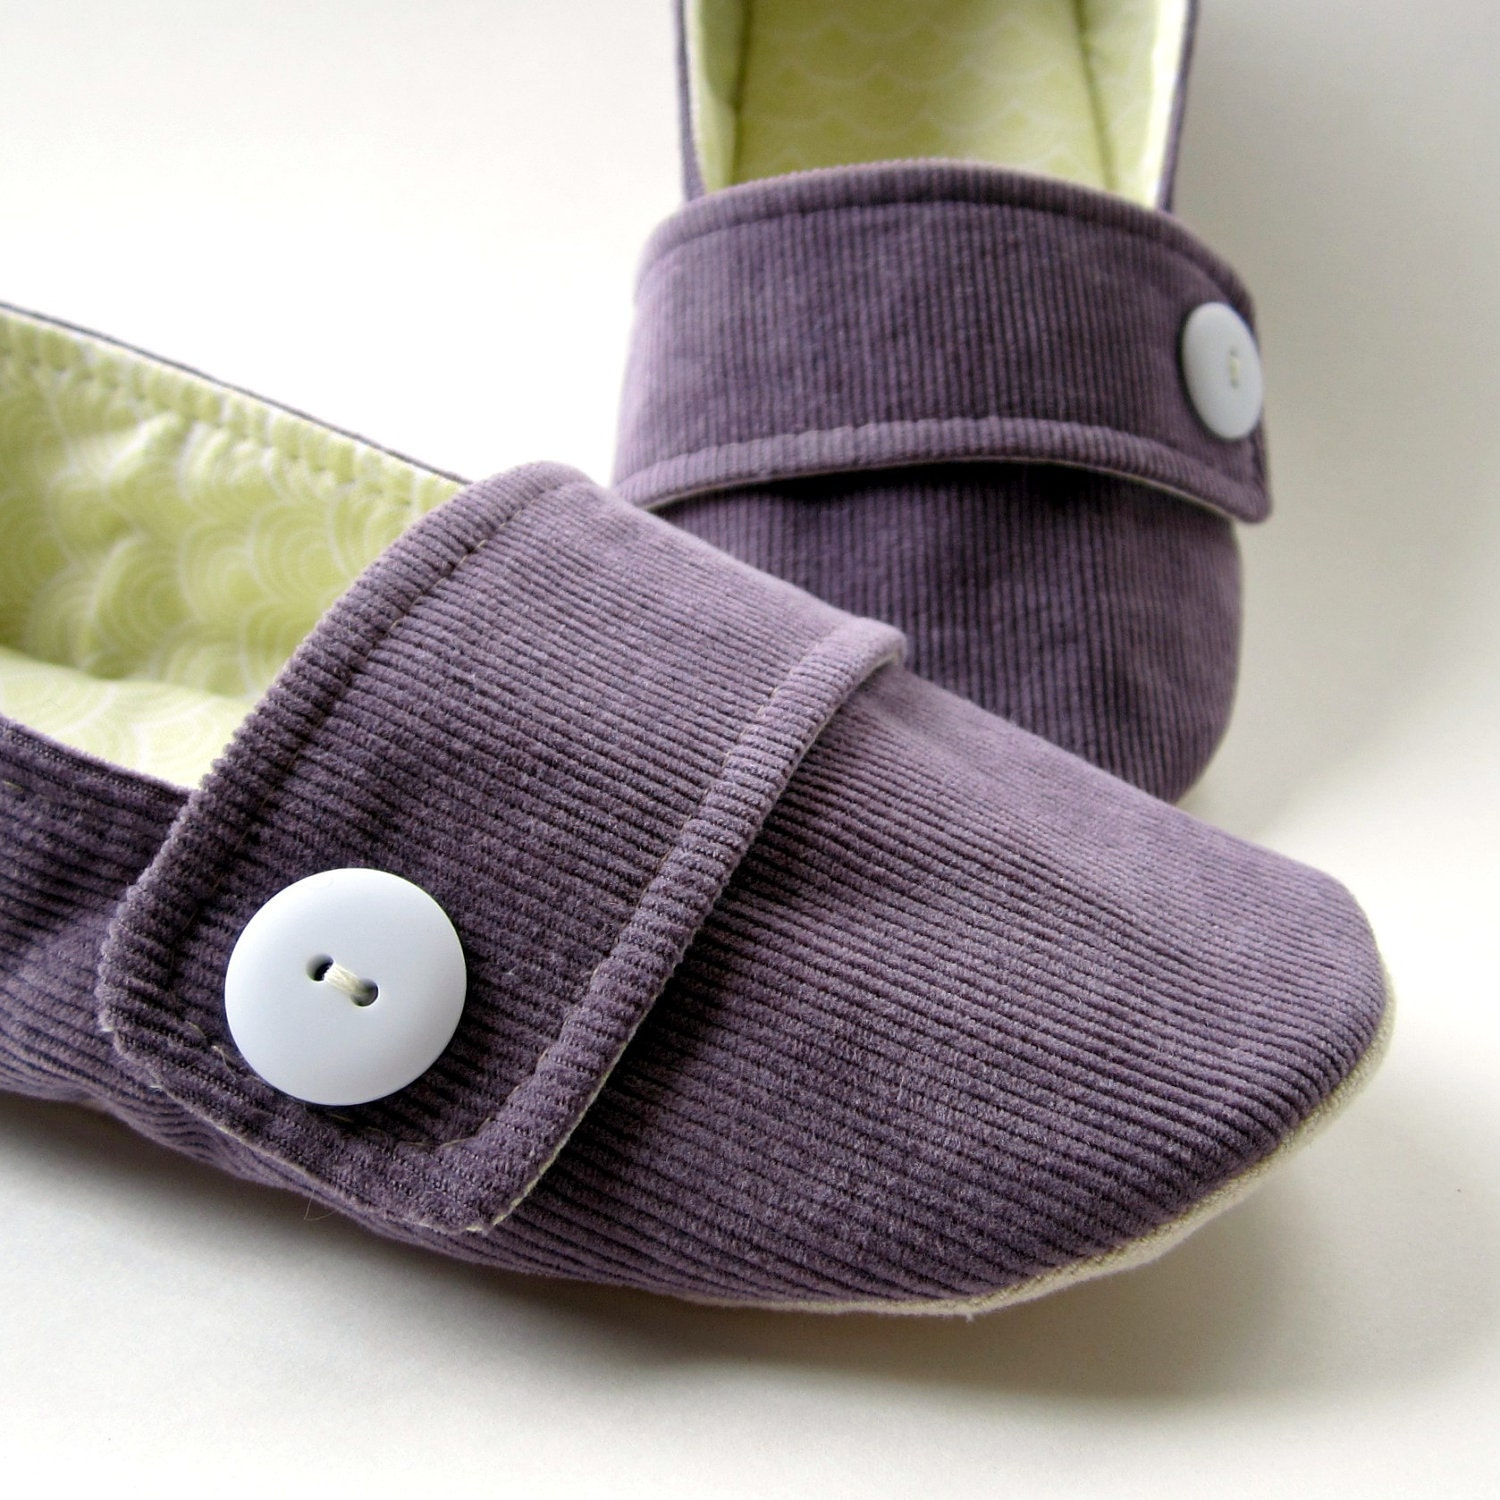 Womens Slippers Purple Corduroy House Shoes with Decorative